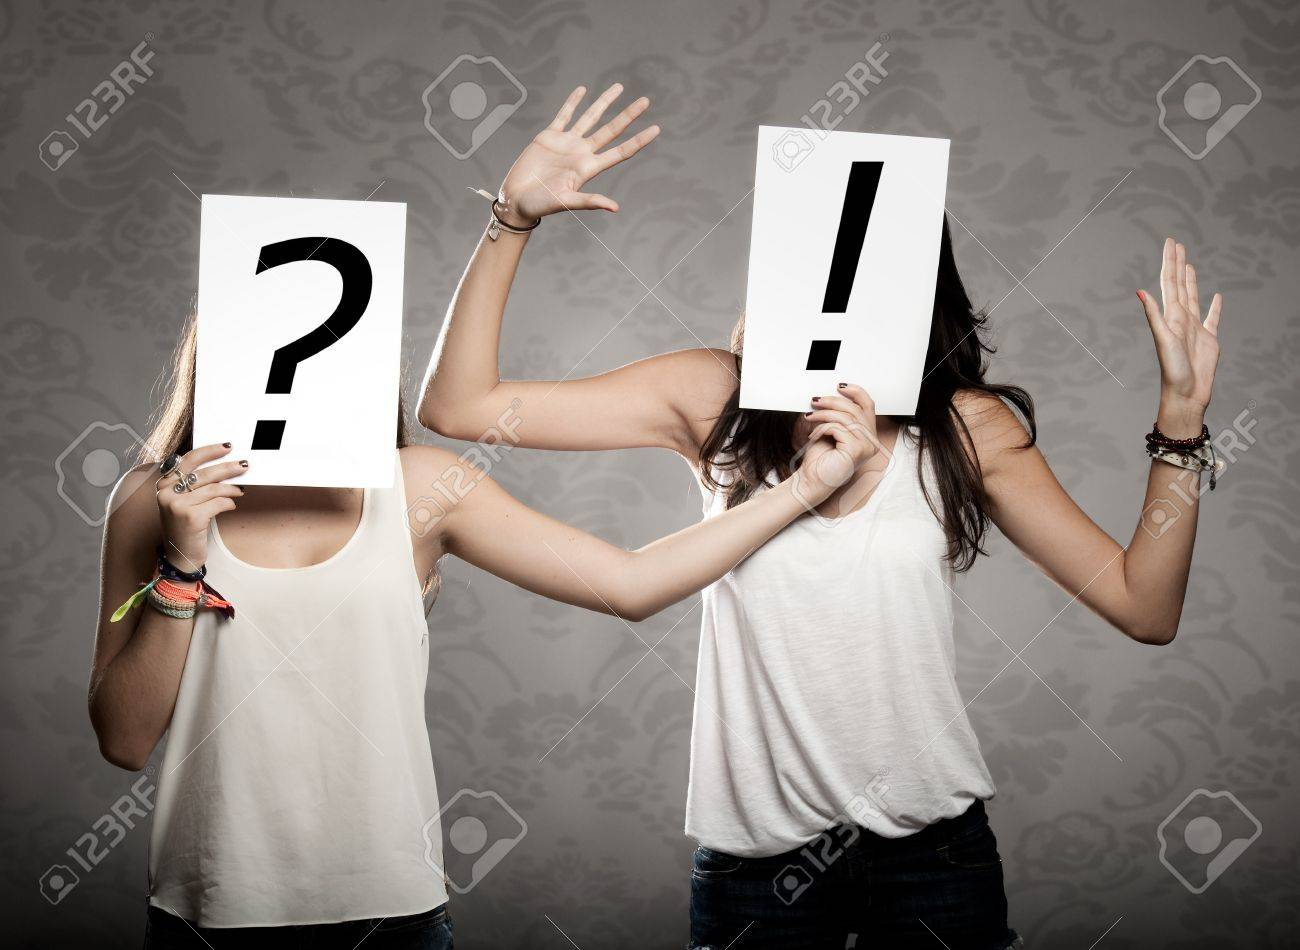 young women with interrogation symbols in front of their faces Stock Photo - 17601311